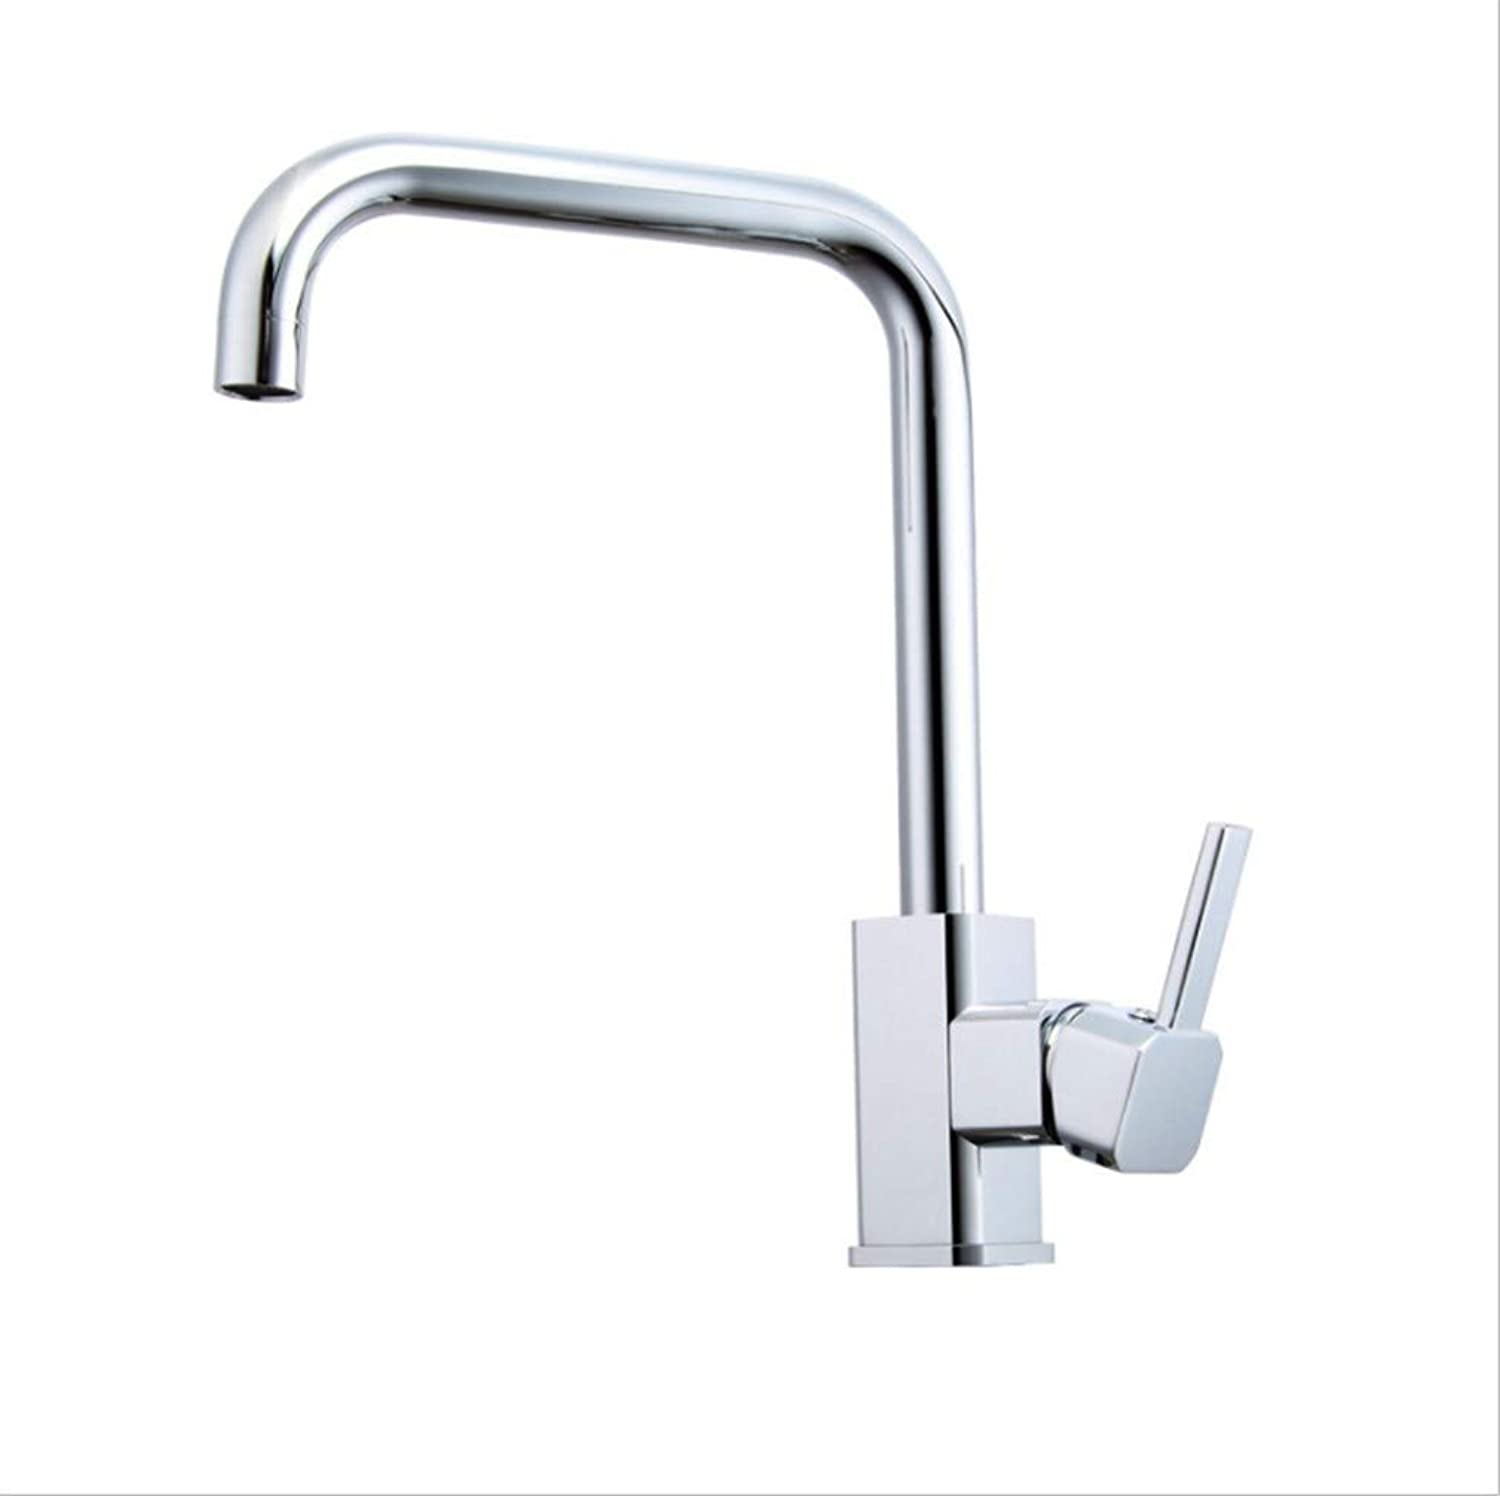 Kitchen Sink Taps Bathroom Taps High-Grade Copper Kitchen Sink Faucet Cold and Hot Mixed Water Dishwasher Basin Faucet